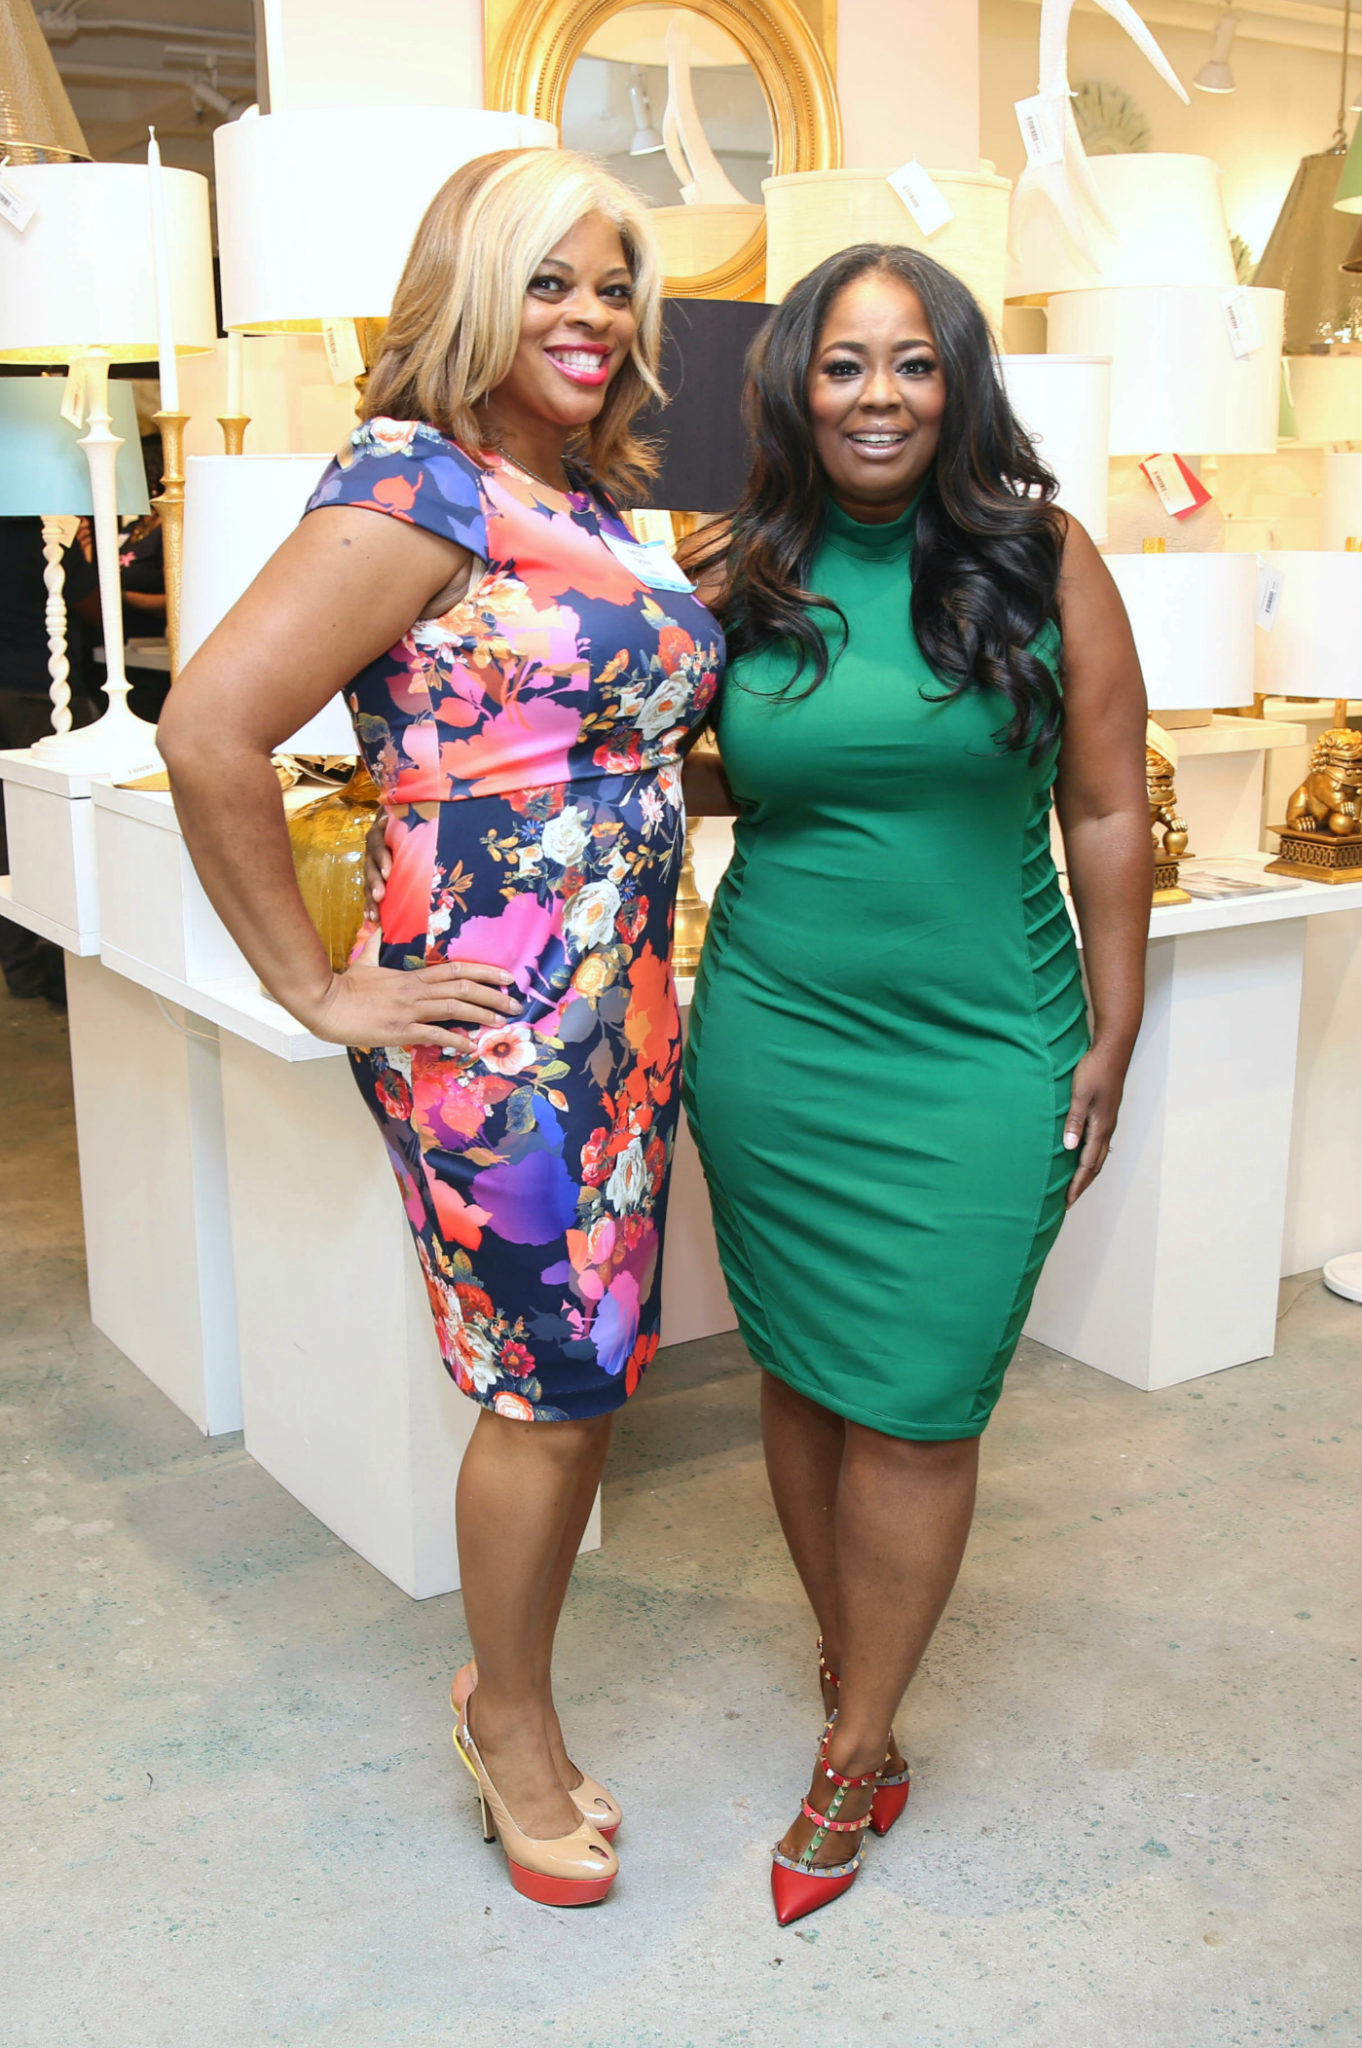 Ace Awards Luncheon Honoring Women In Media & Entertainment